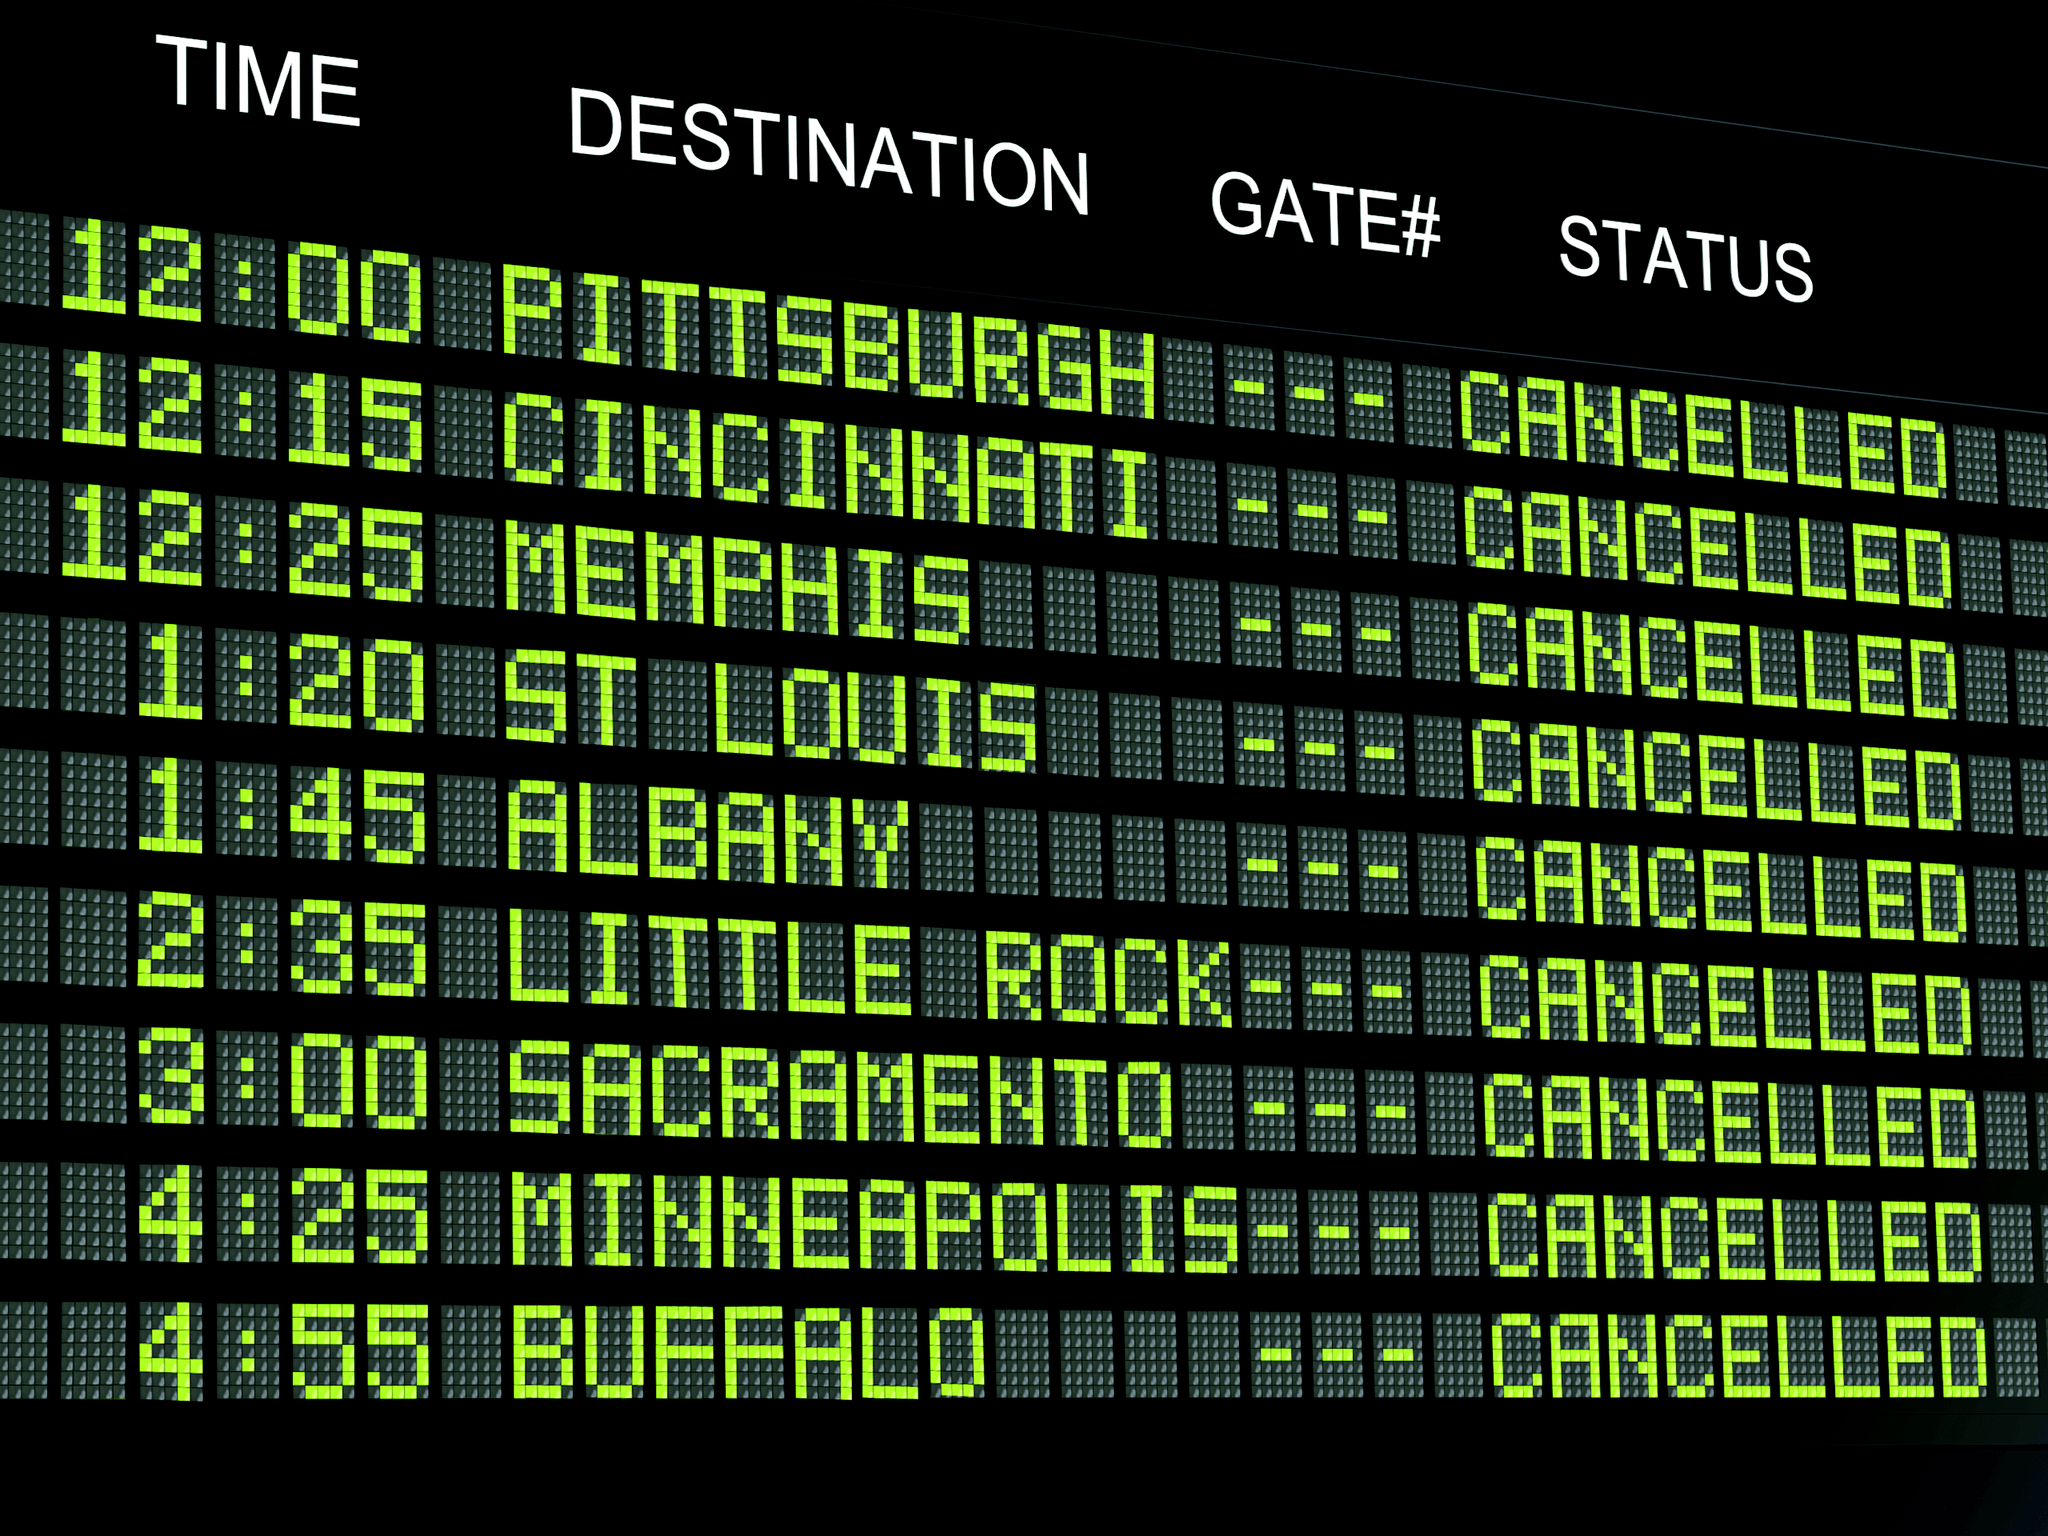 Here's how United and other airlines became atrocious behemoths